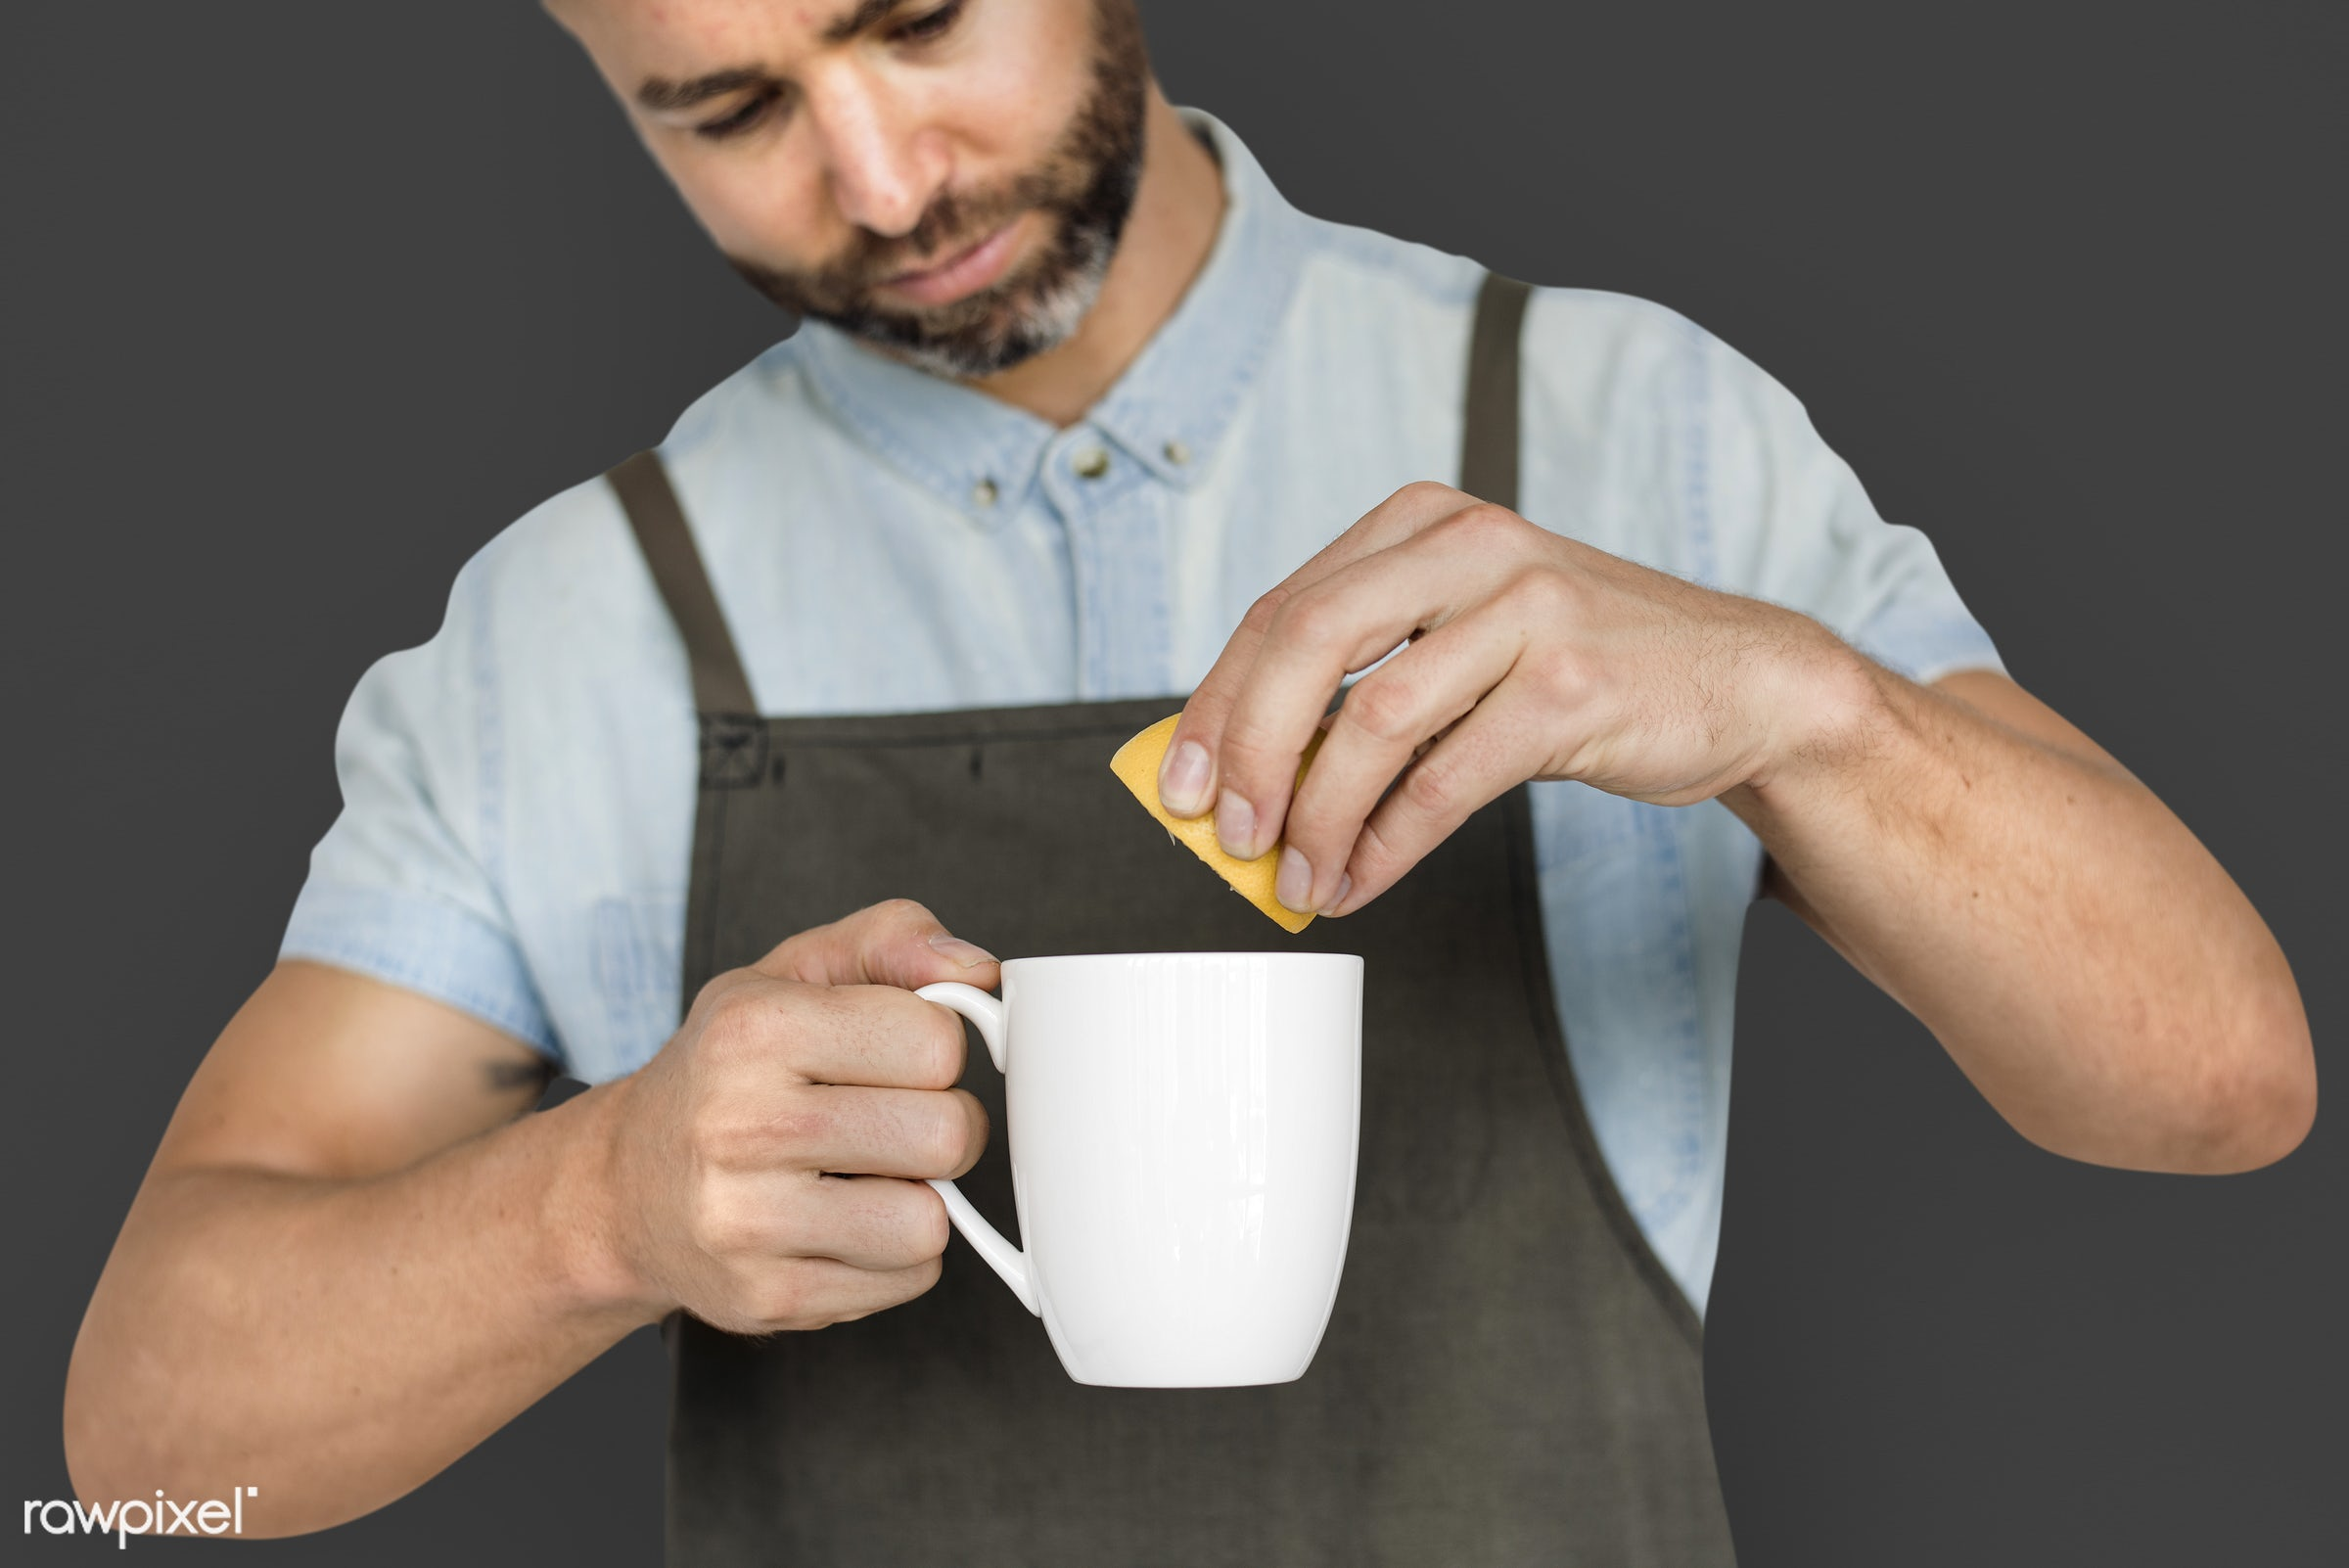 studio, pastel, person, model, tea, race, people, style, solo, lifestyle, casual, beige, man, isolated, tone, guy, male,...